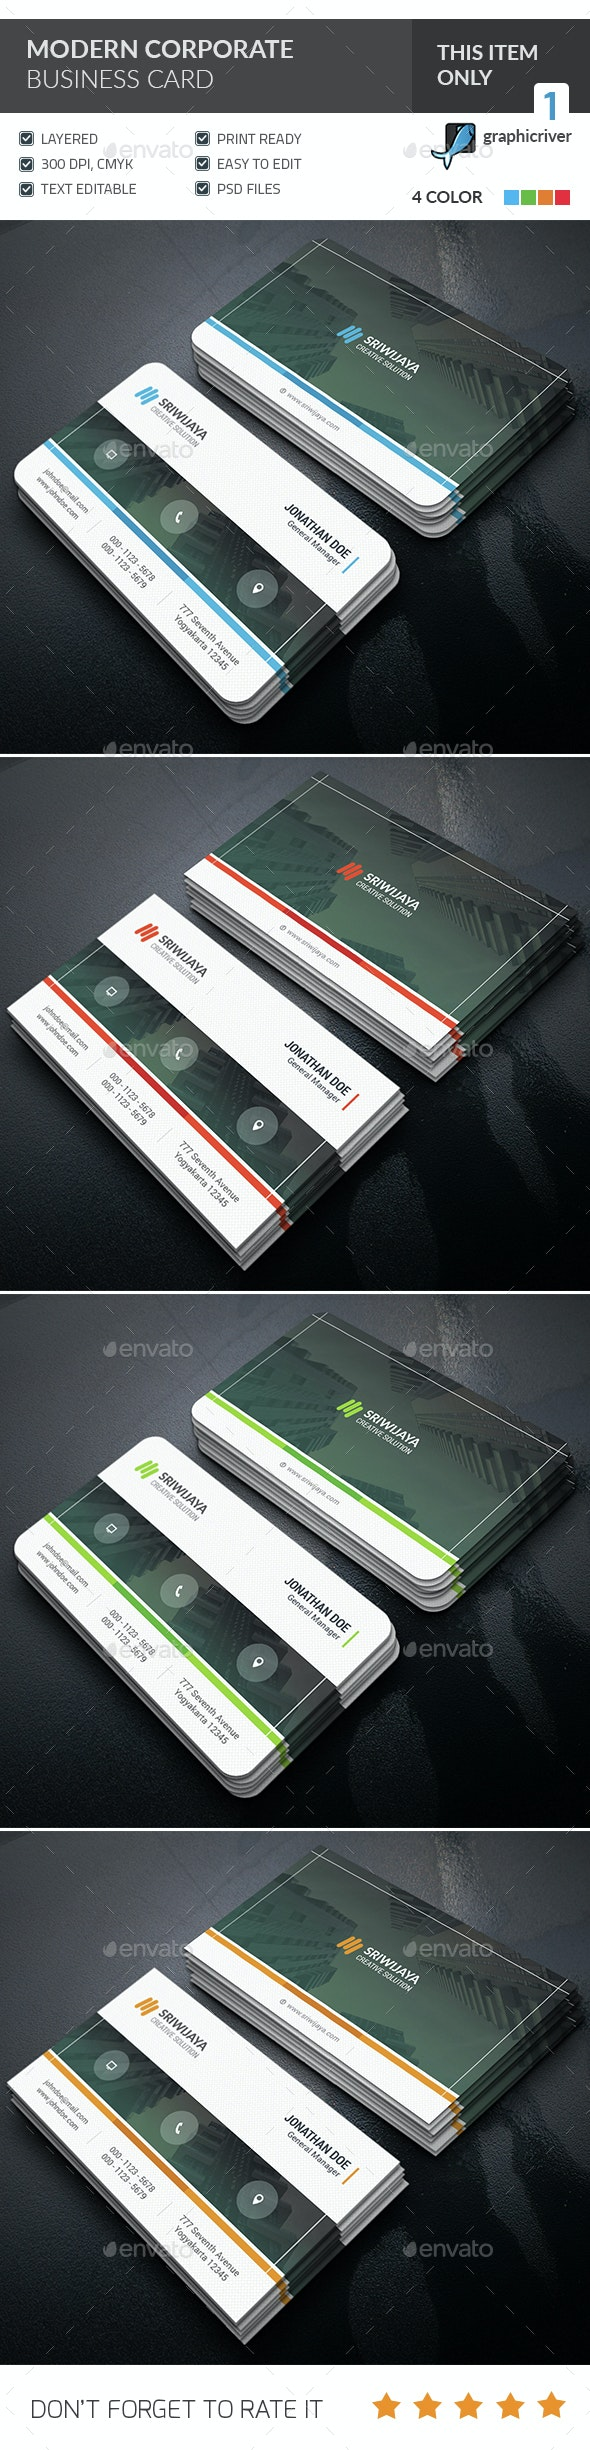 Modern Corporate Business Card  - Corporate Business Cards